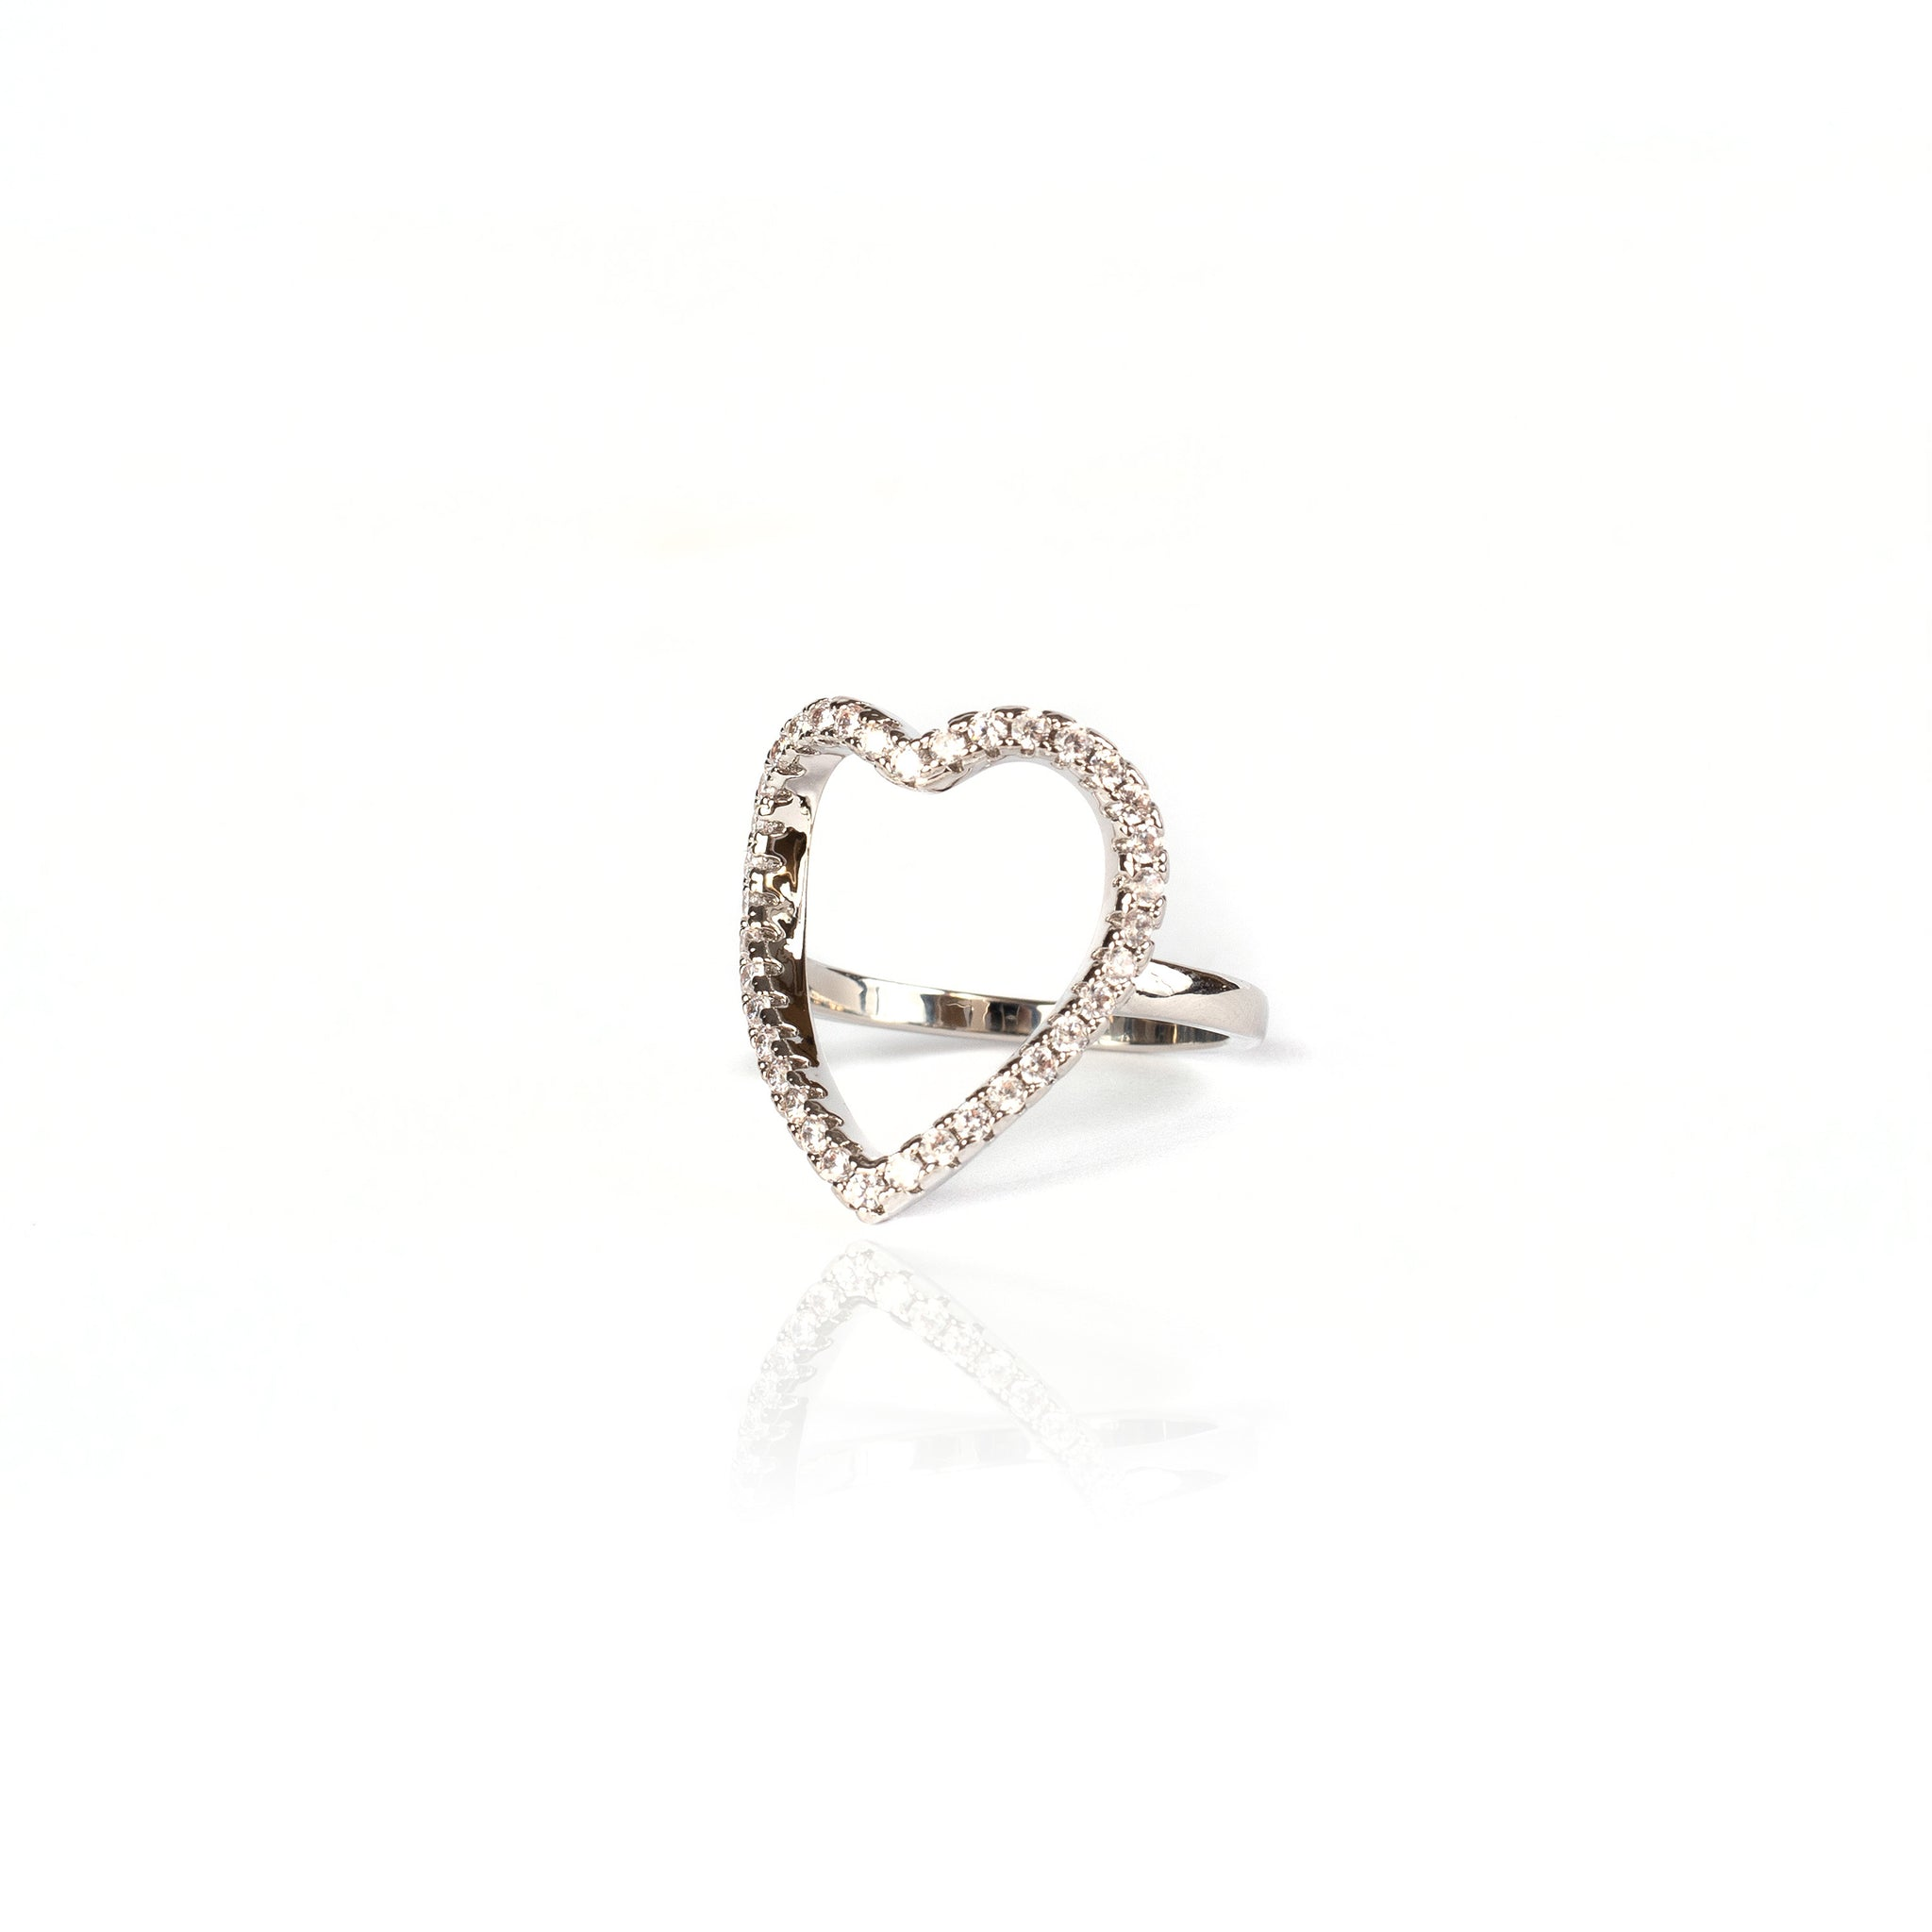 OPEN HEART RING | White Rhodium Plated